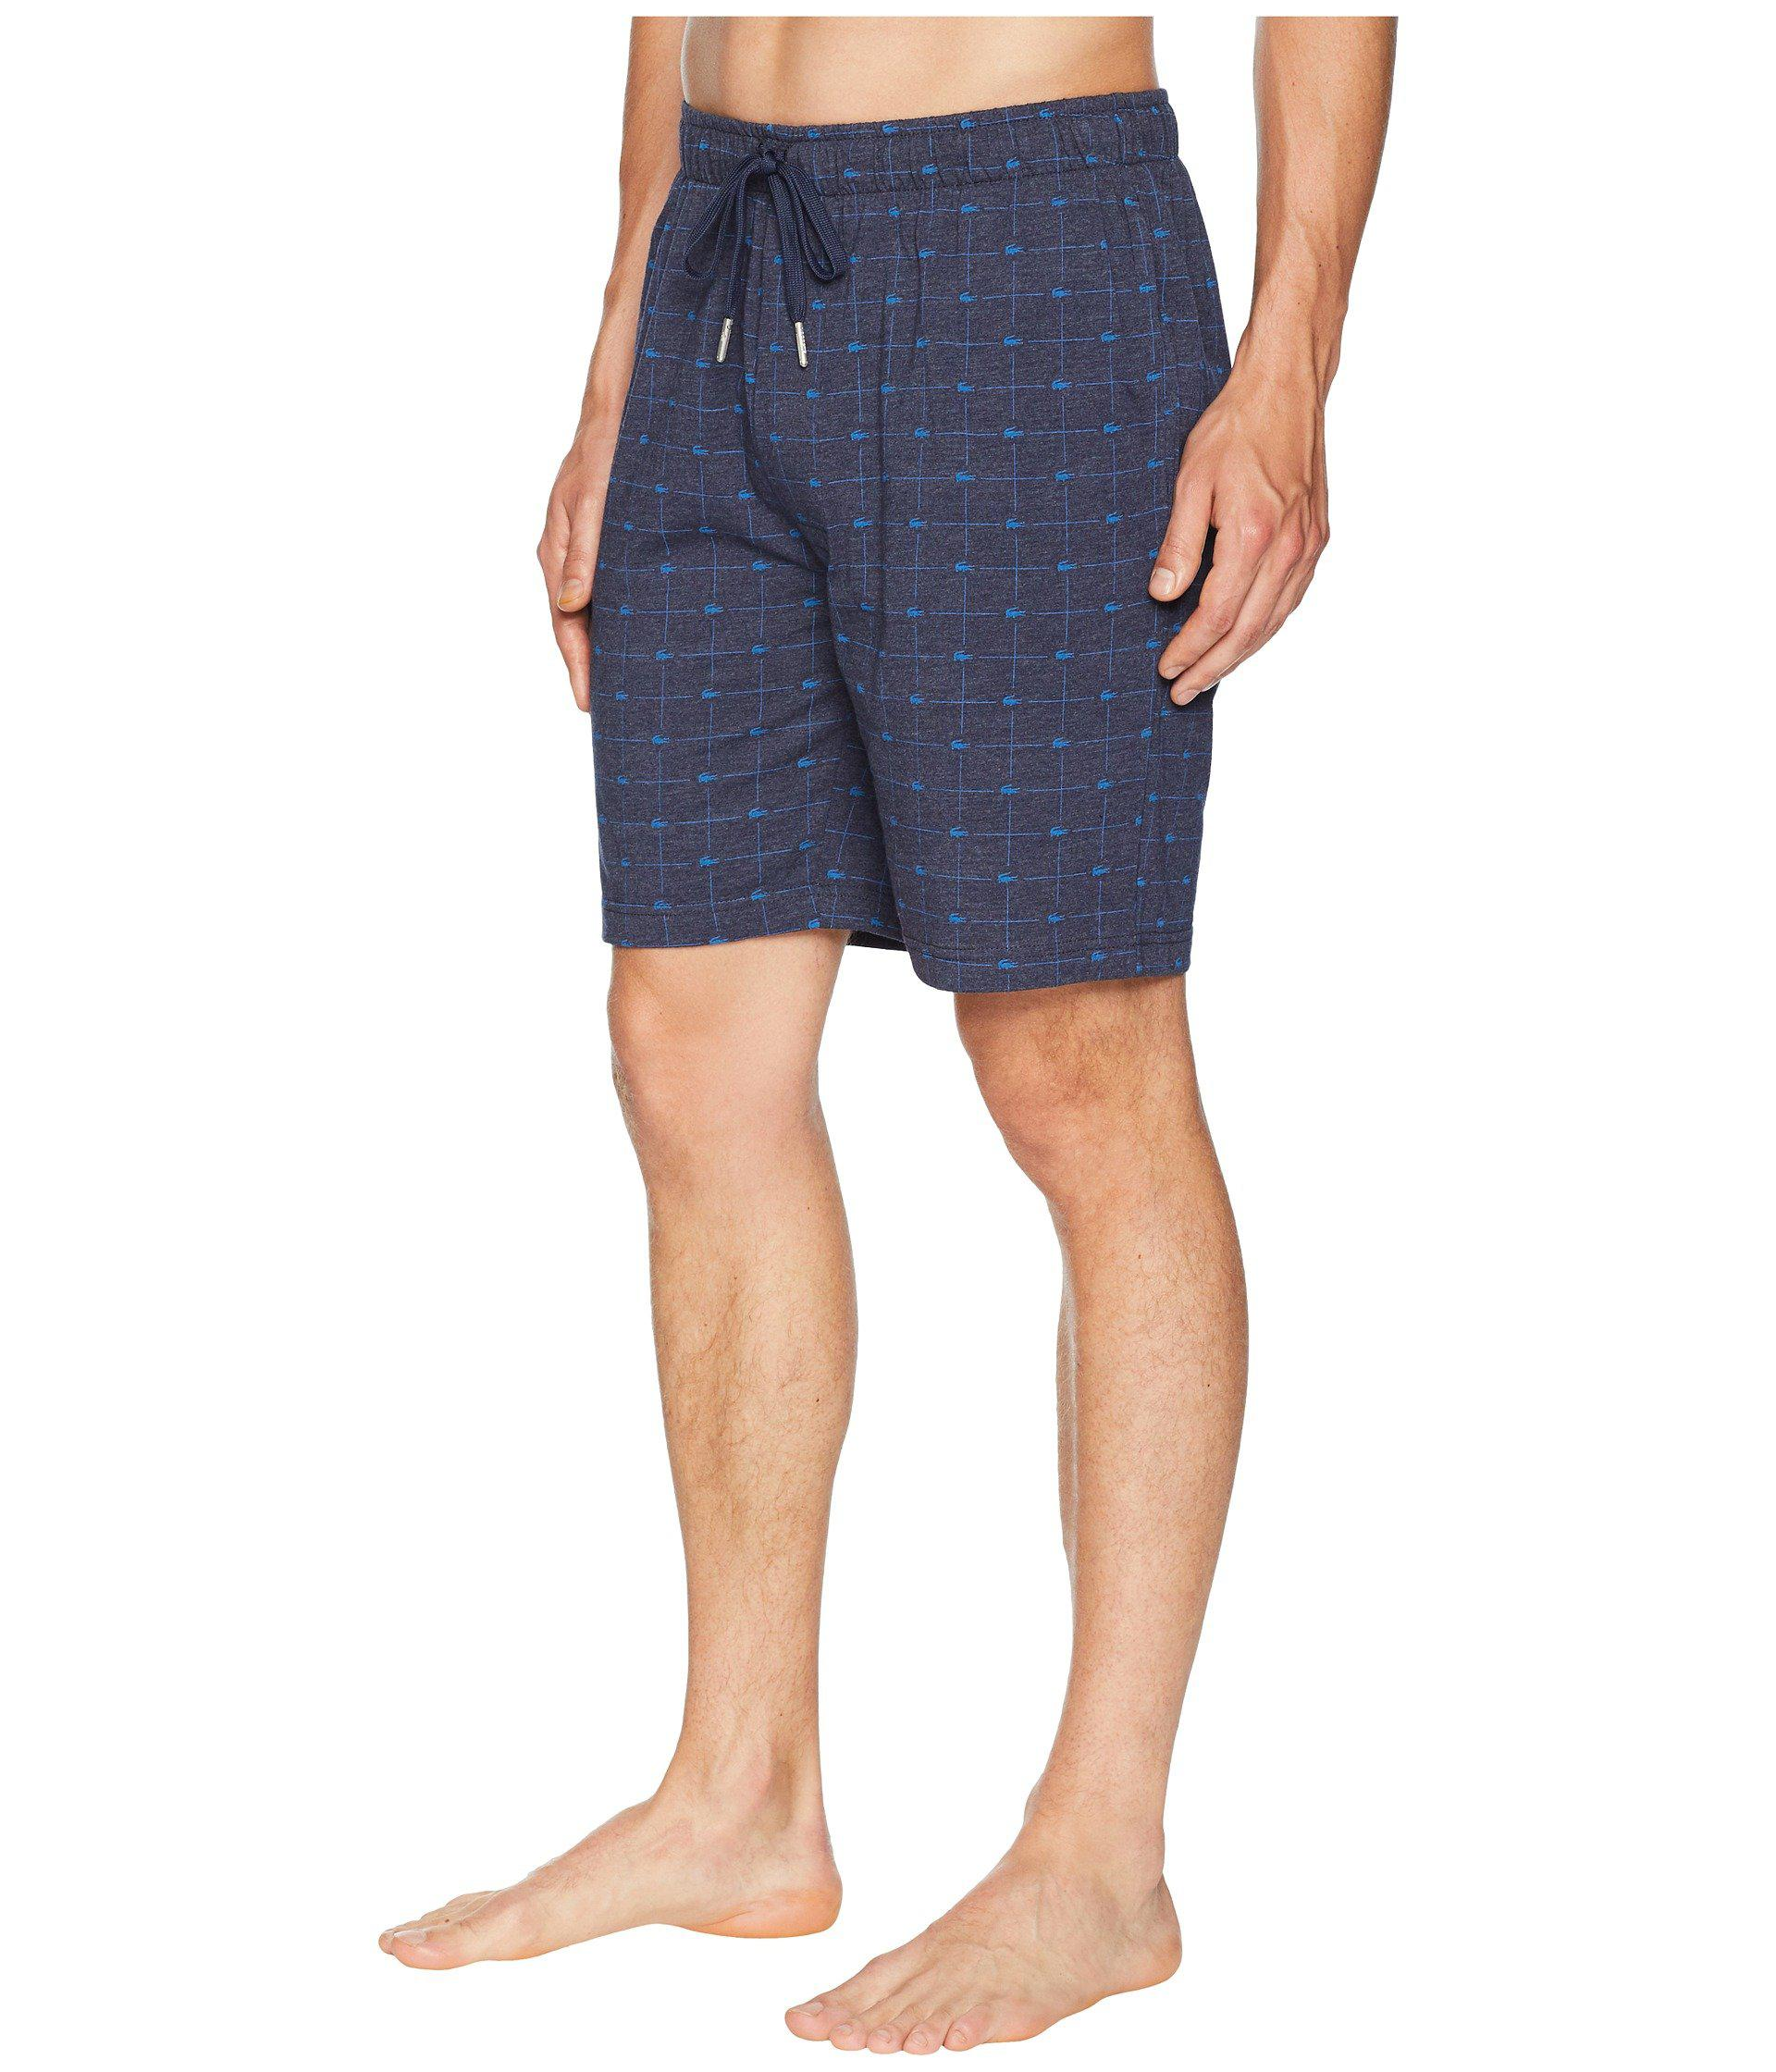 a3ad9ec4469 Lyst - Lacoste Signature Print Knit Shorts (navy) Men's Pajama in ...